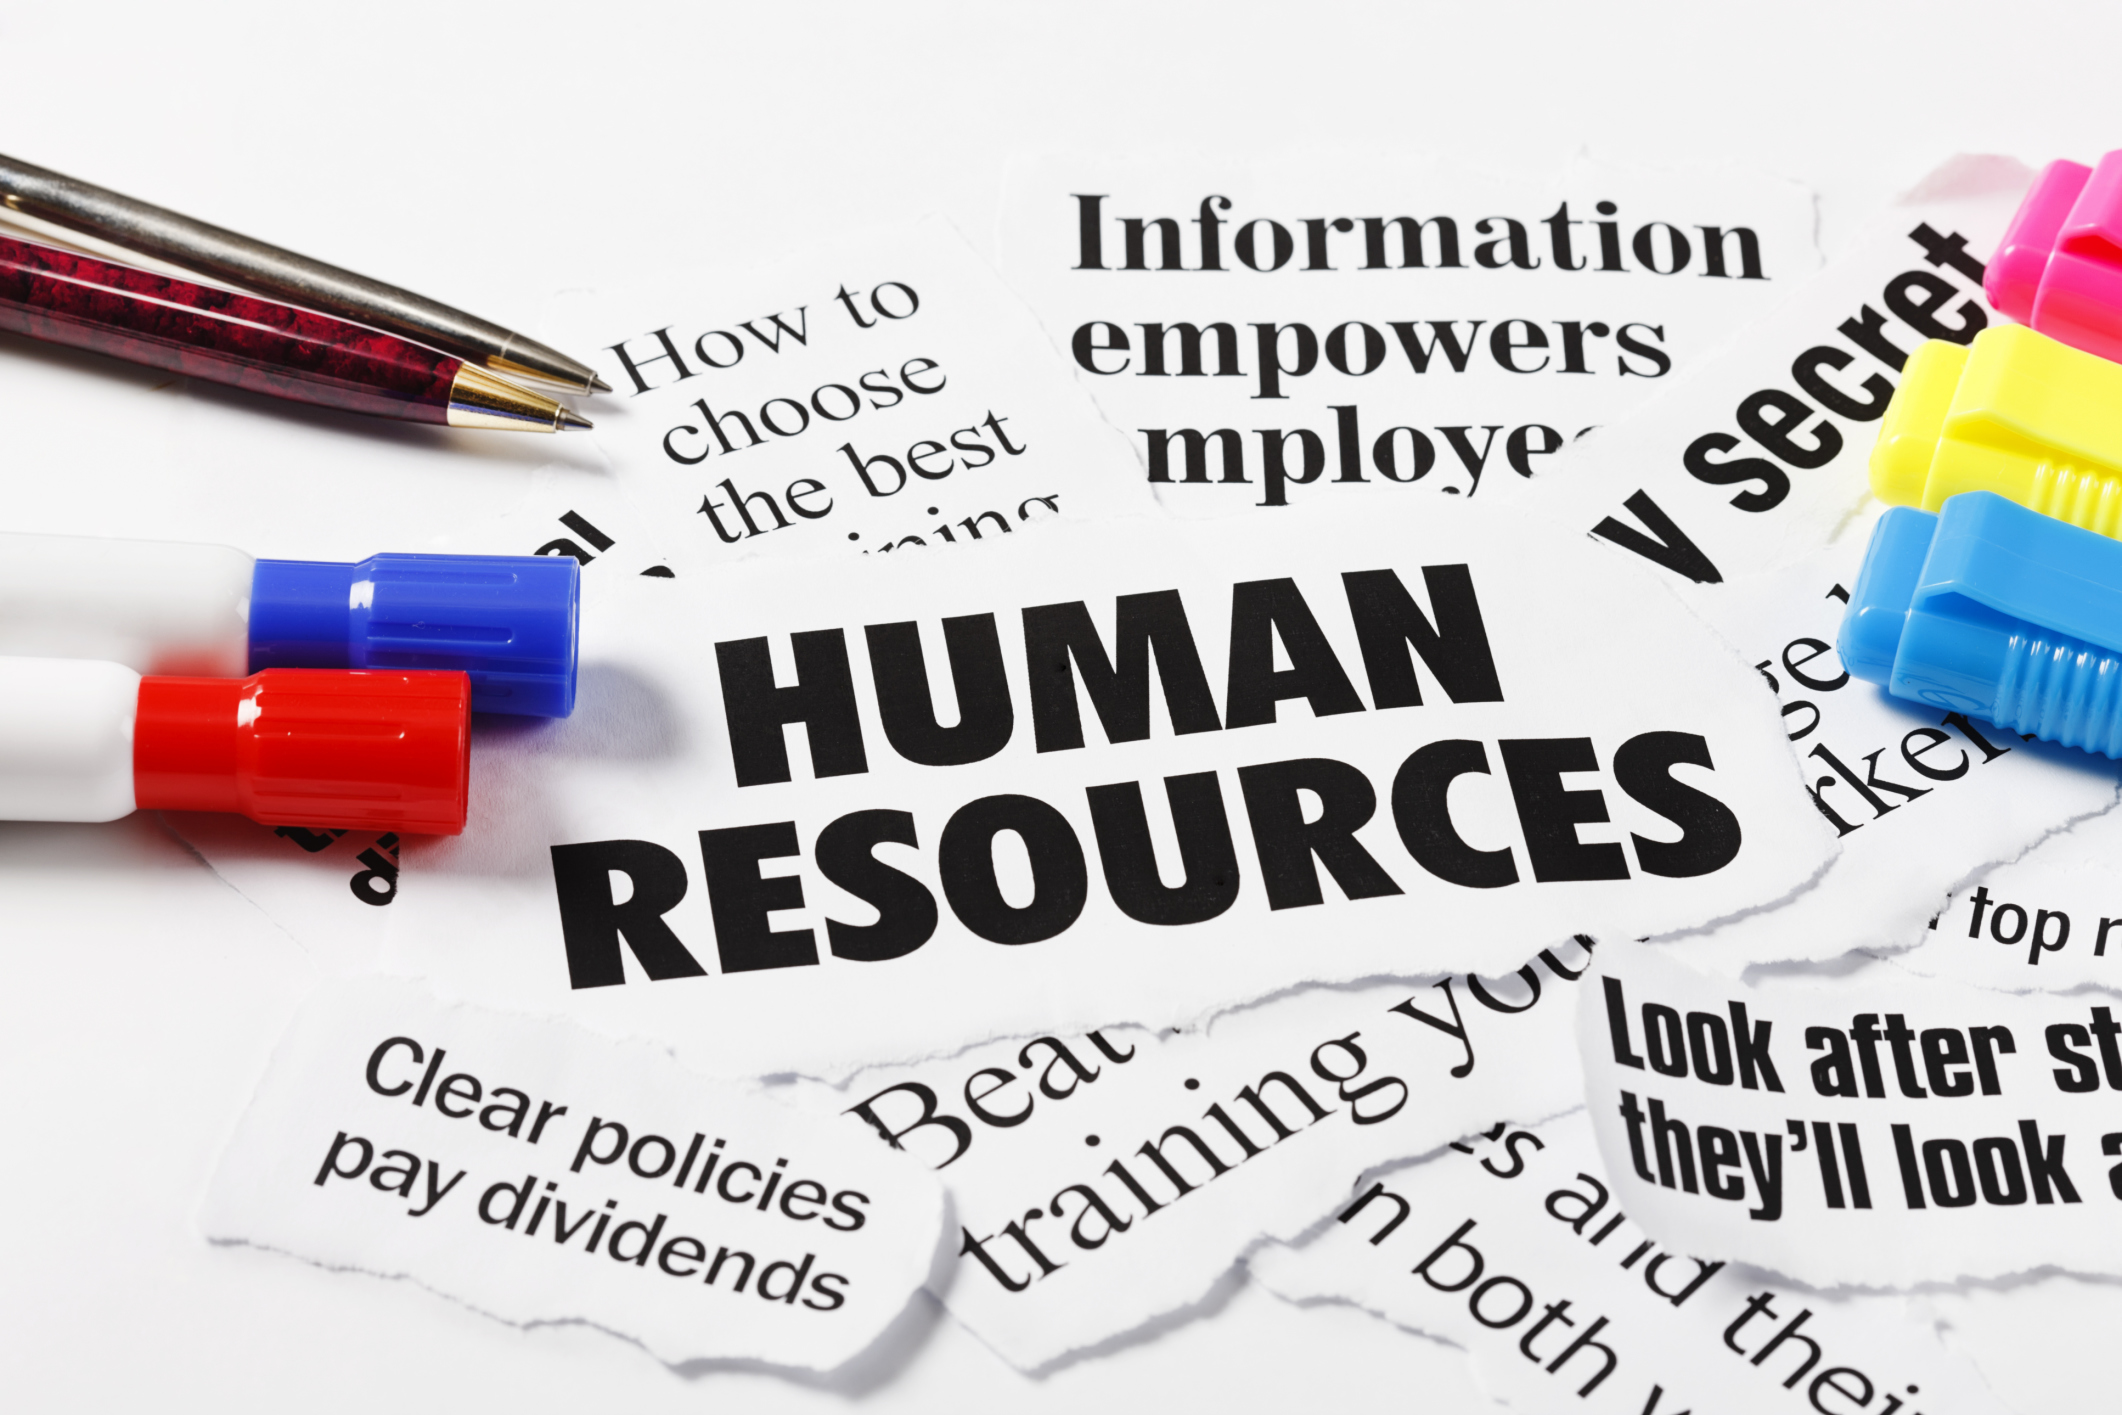 Headlines on Human Resources and employment issues, with pens